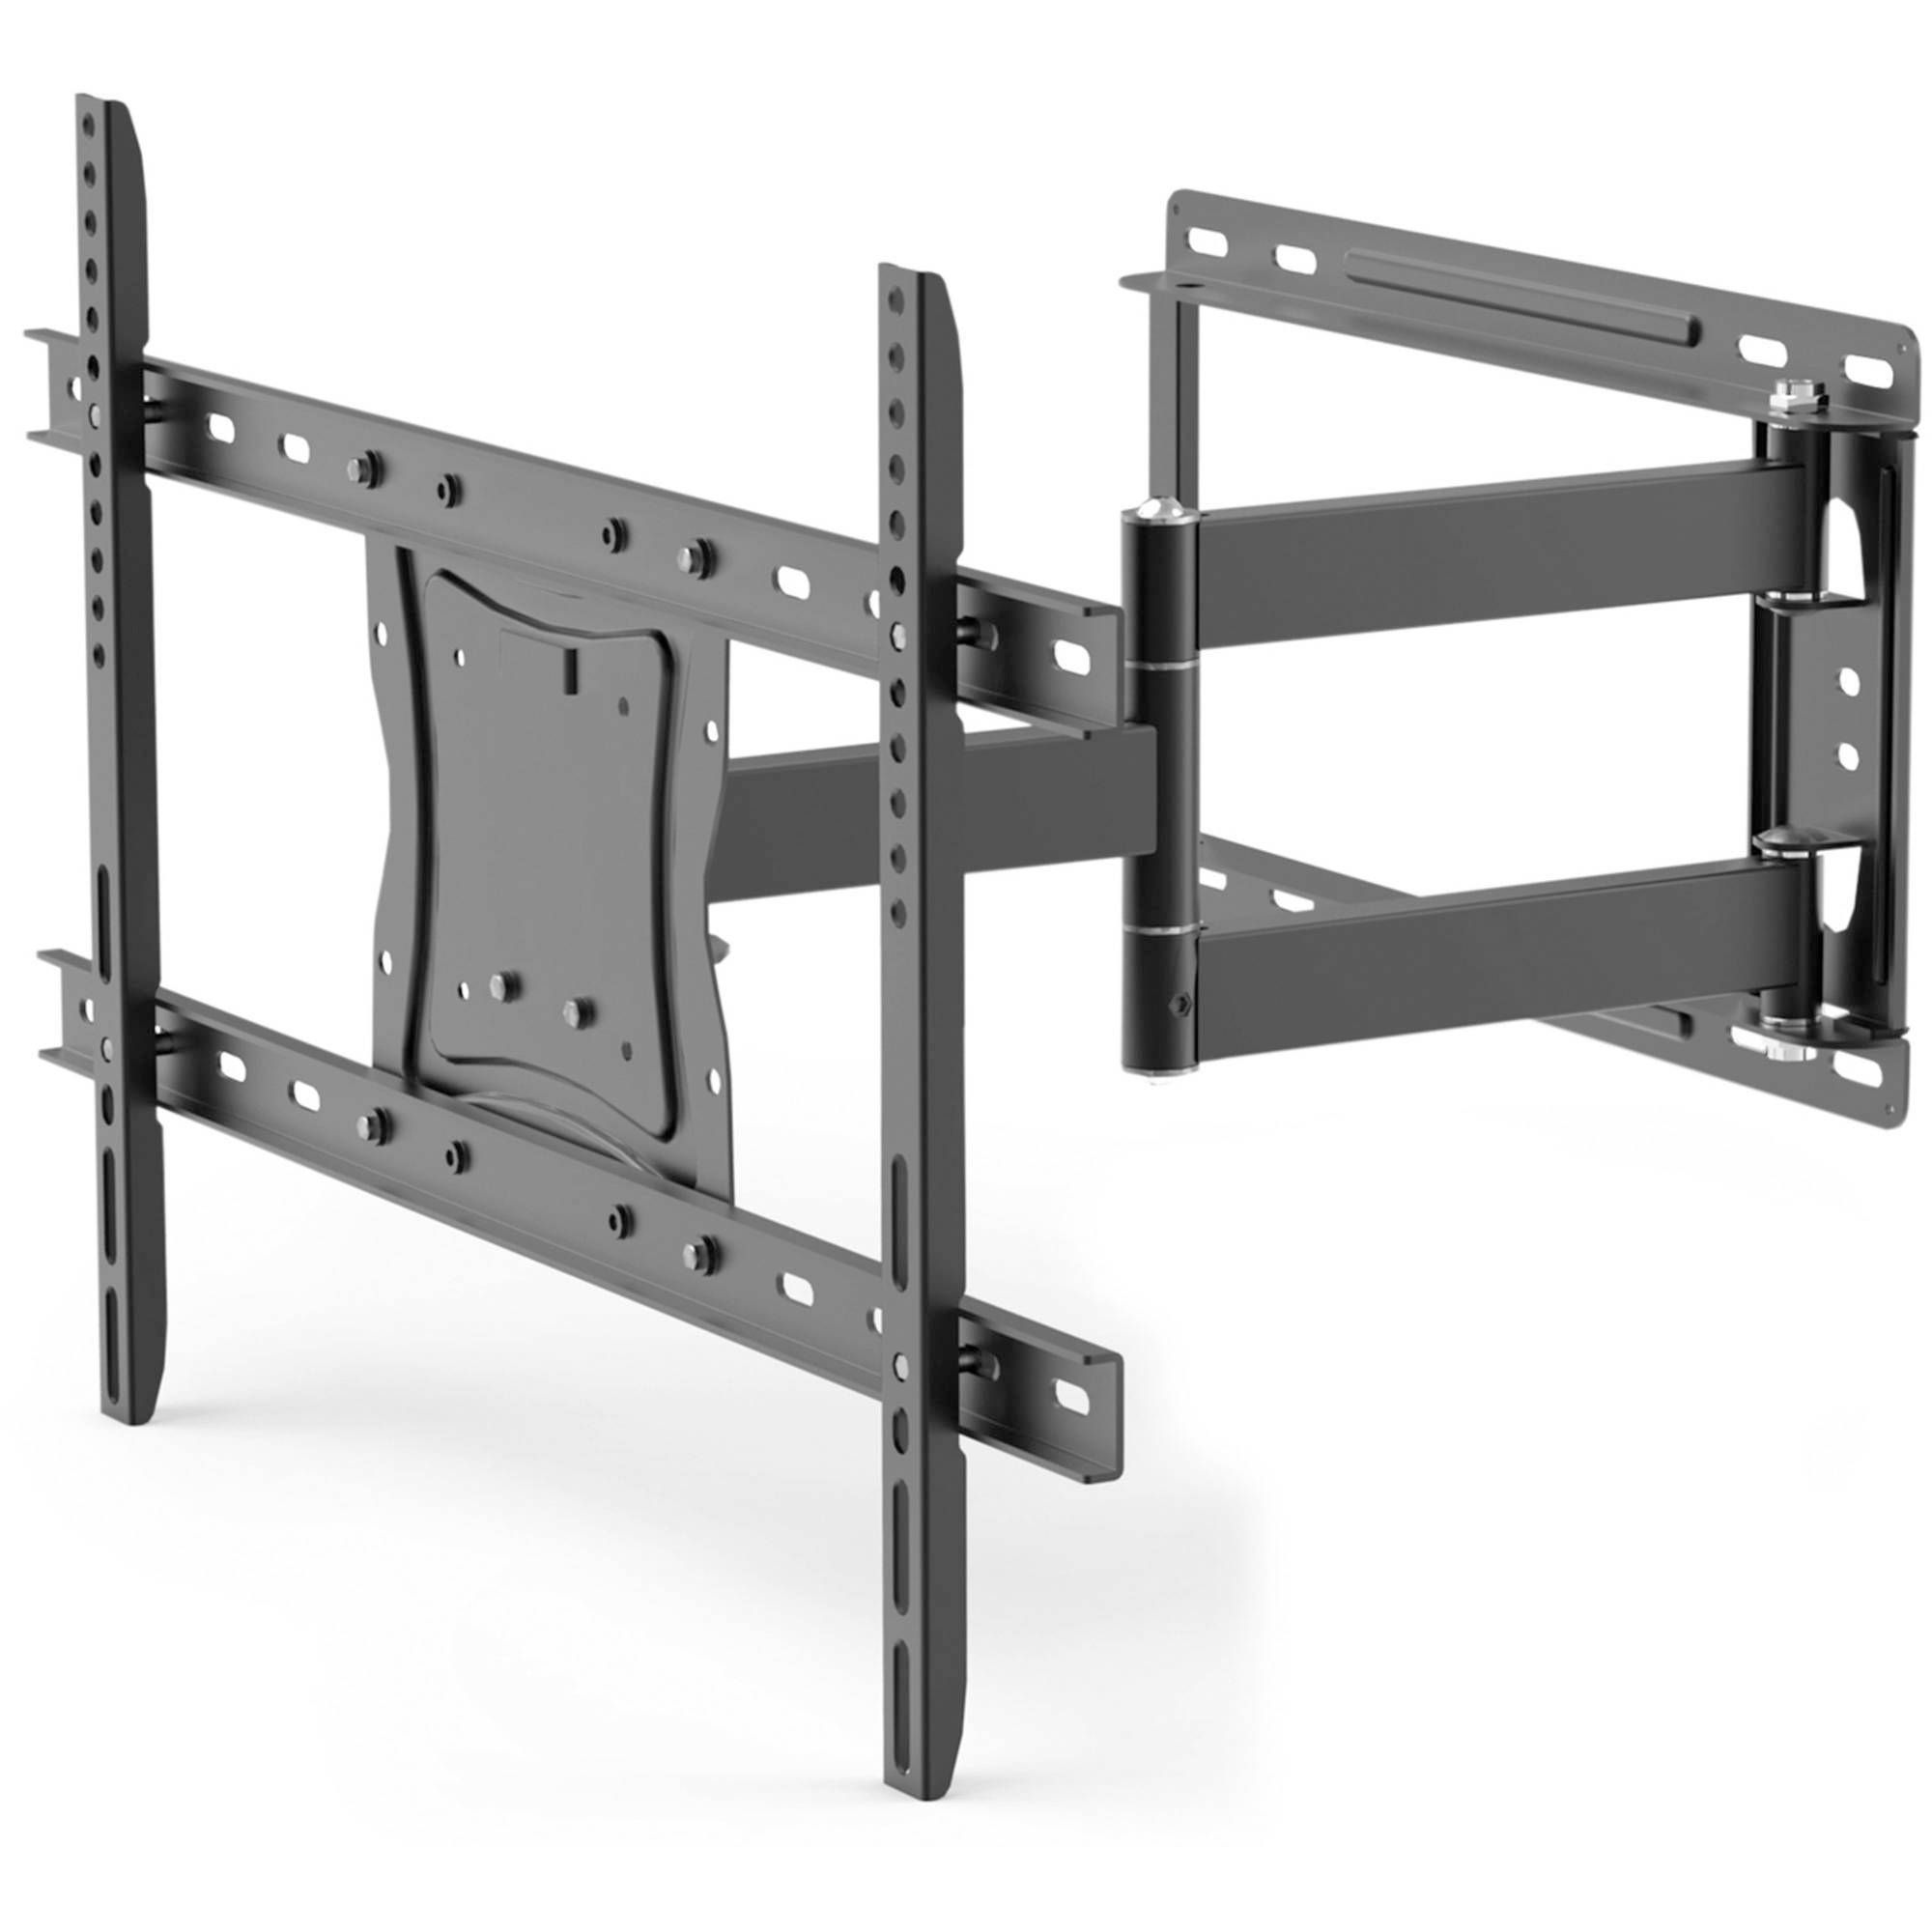 Onn Full Motion Articulating Tilt Swivel Universal Wall Mount Kit For 19 To 84 Tvs With Hdmi Cable Ona16tm01 Wall Mounted Tv Tv Wall Tilting Tv Wall Mount